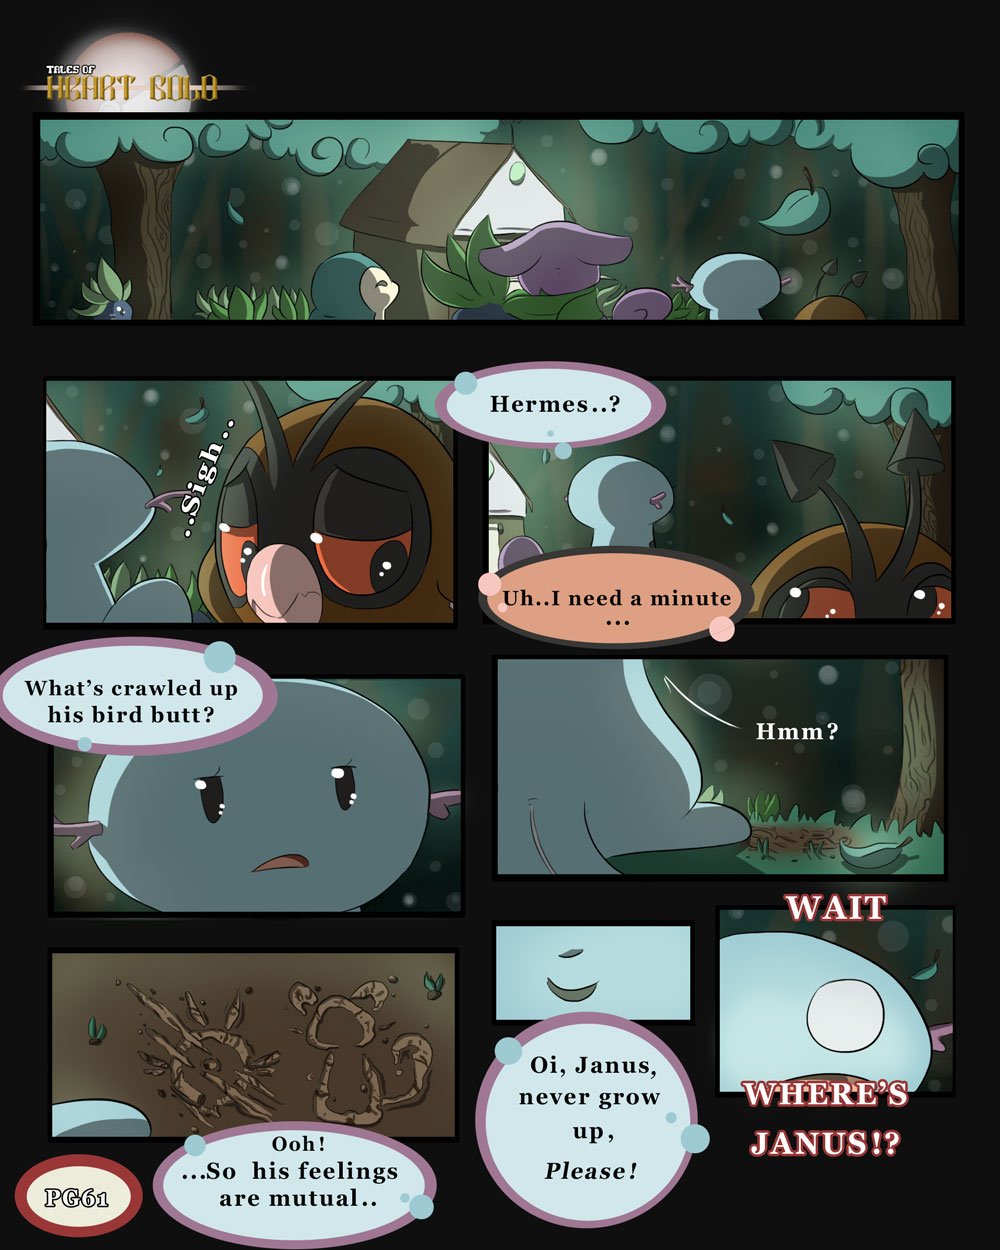 Into Woods PG15: It's mutual...